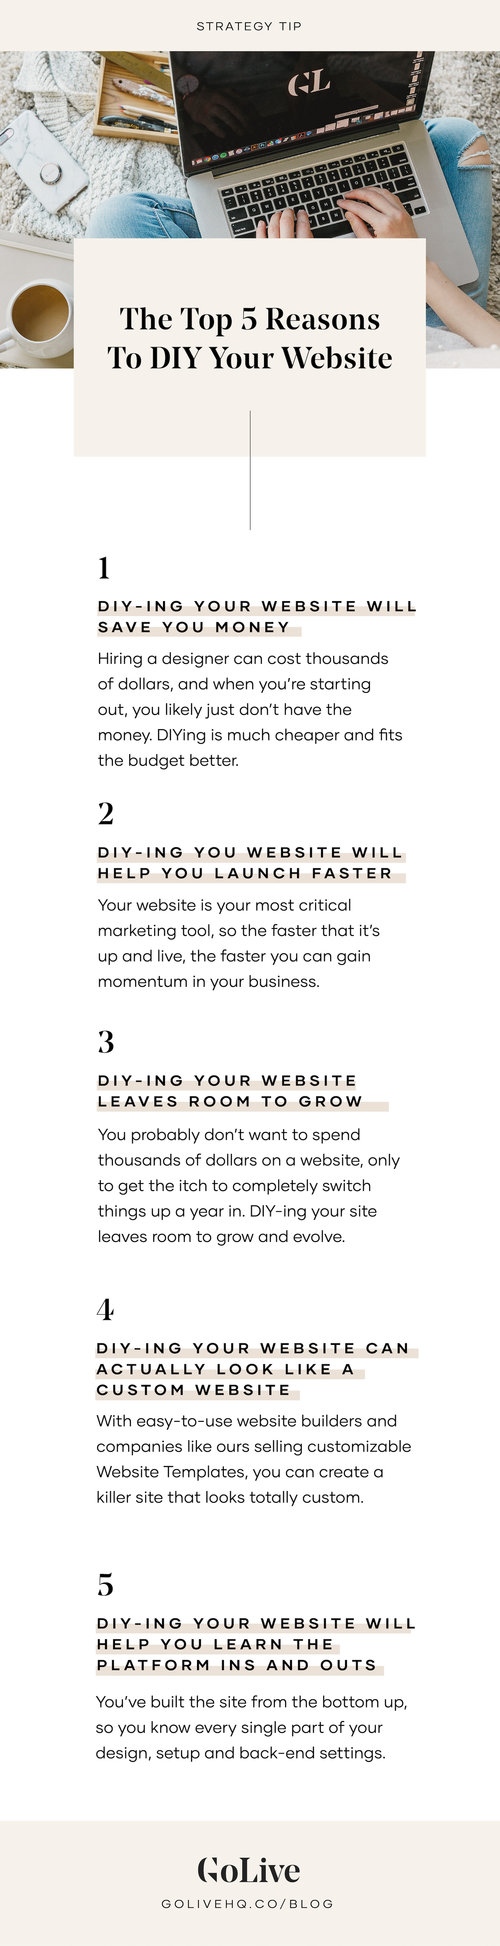 5+reasons+to+diy+your+website_Pinterest.jpg